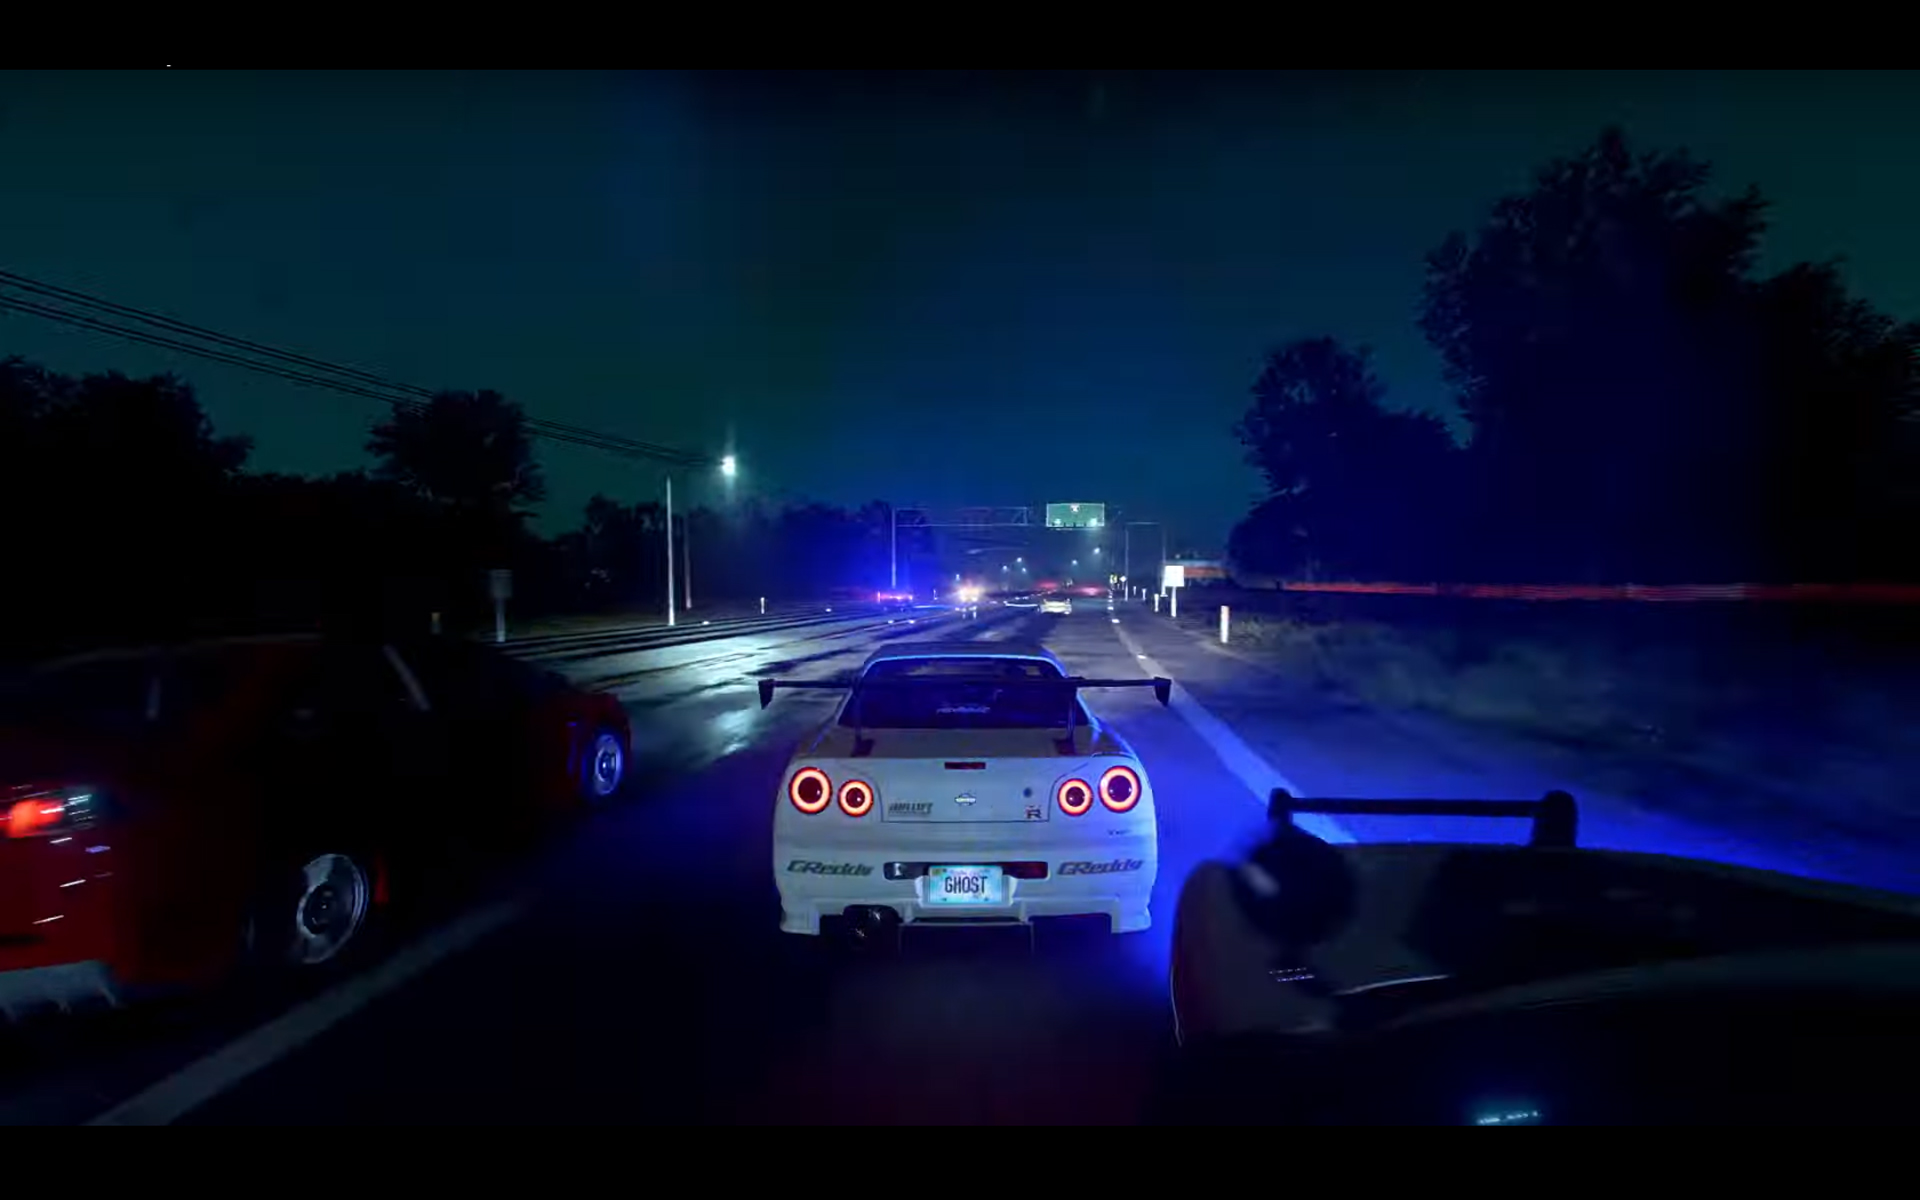 NFS-Heat-2019-screen-trailer-Nissan-GT-R-rear-night-pursuit